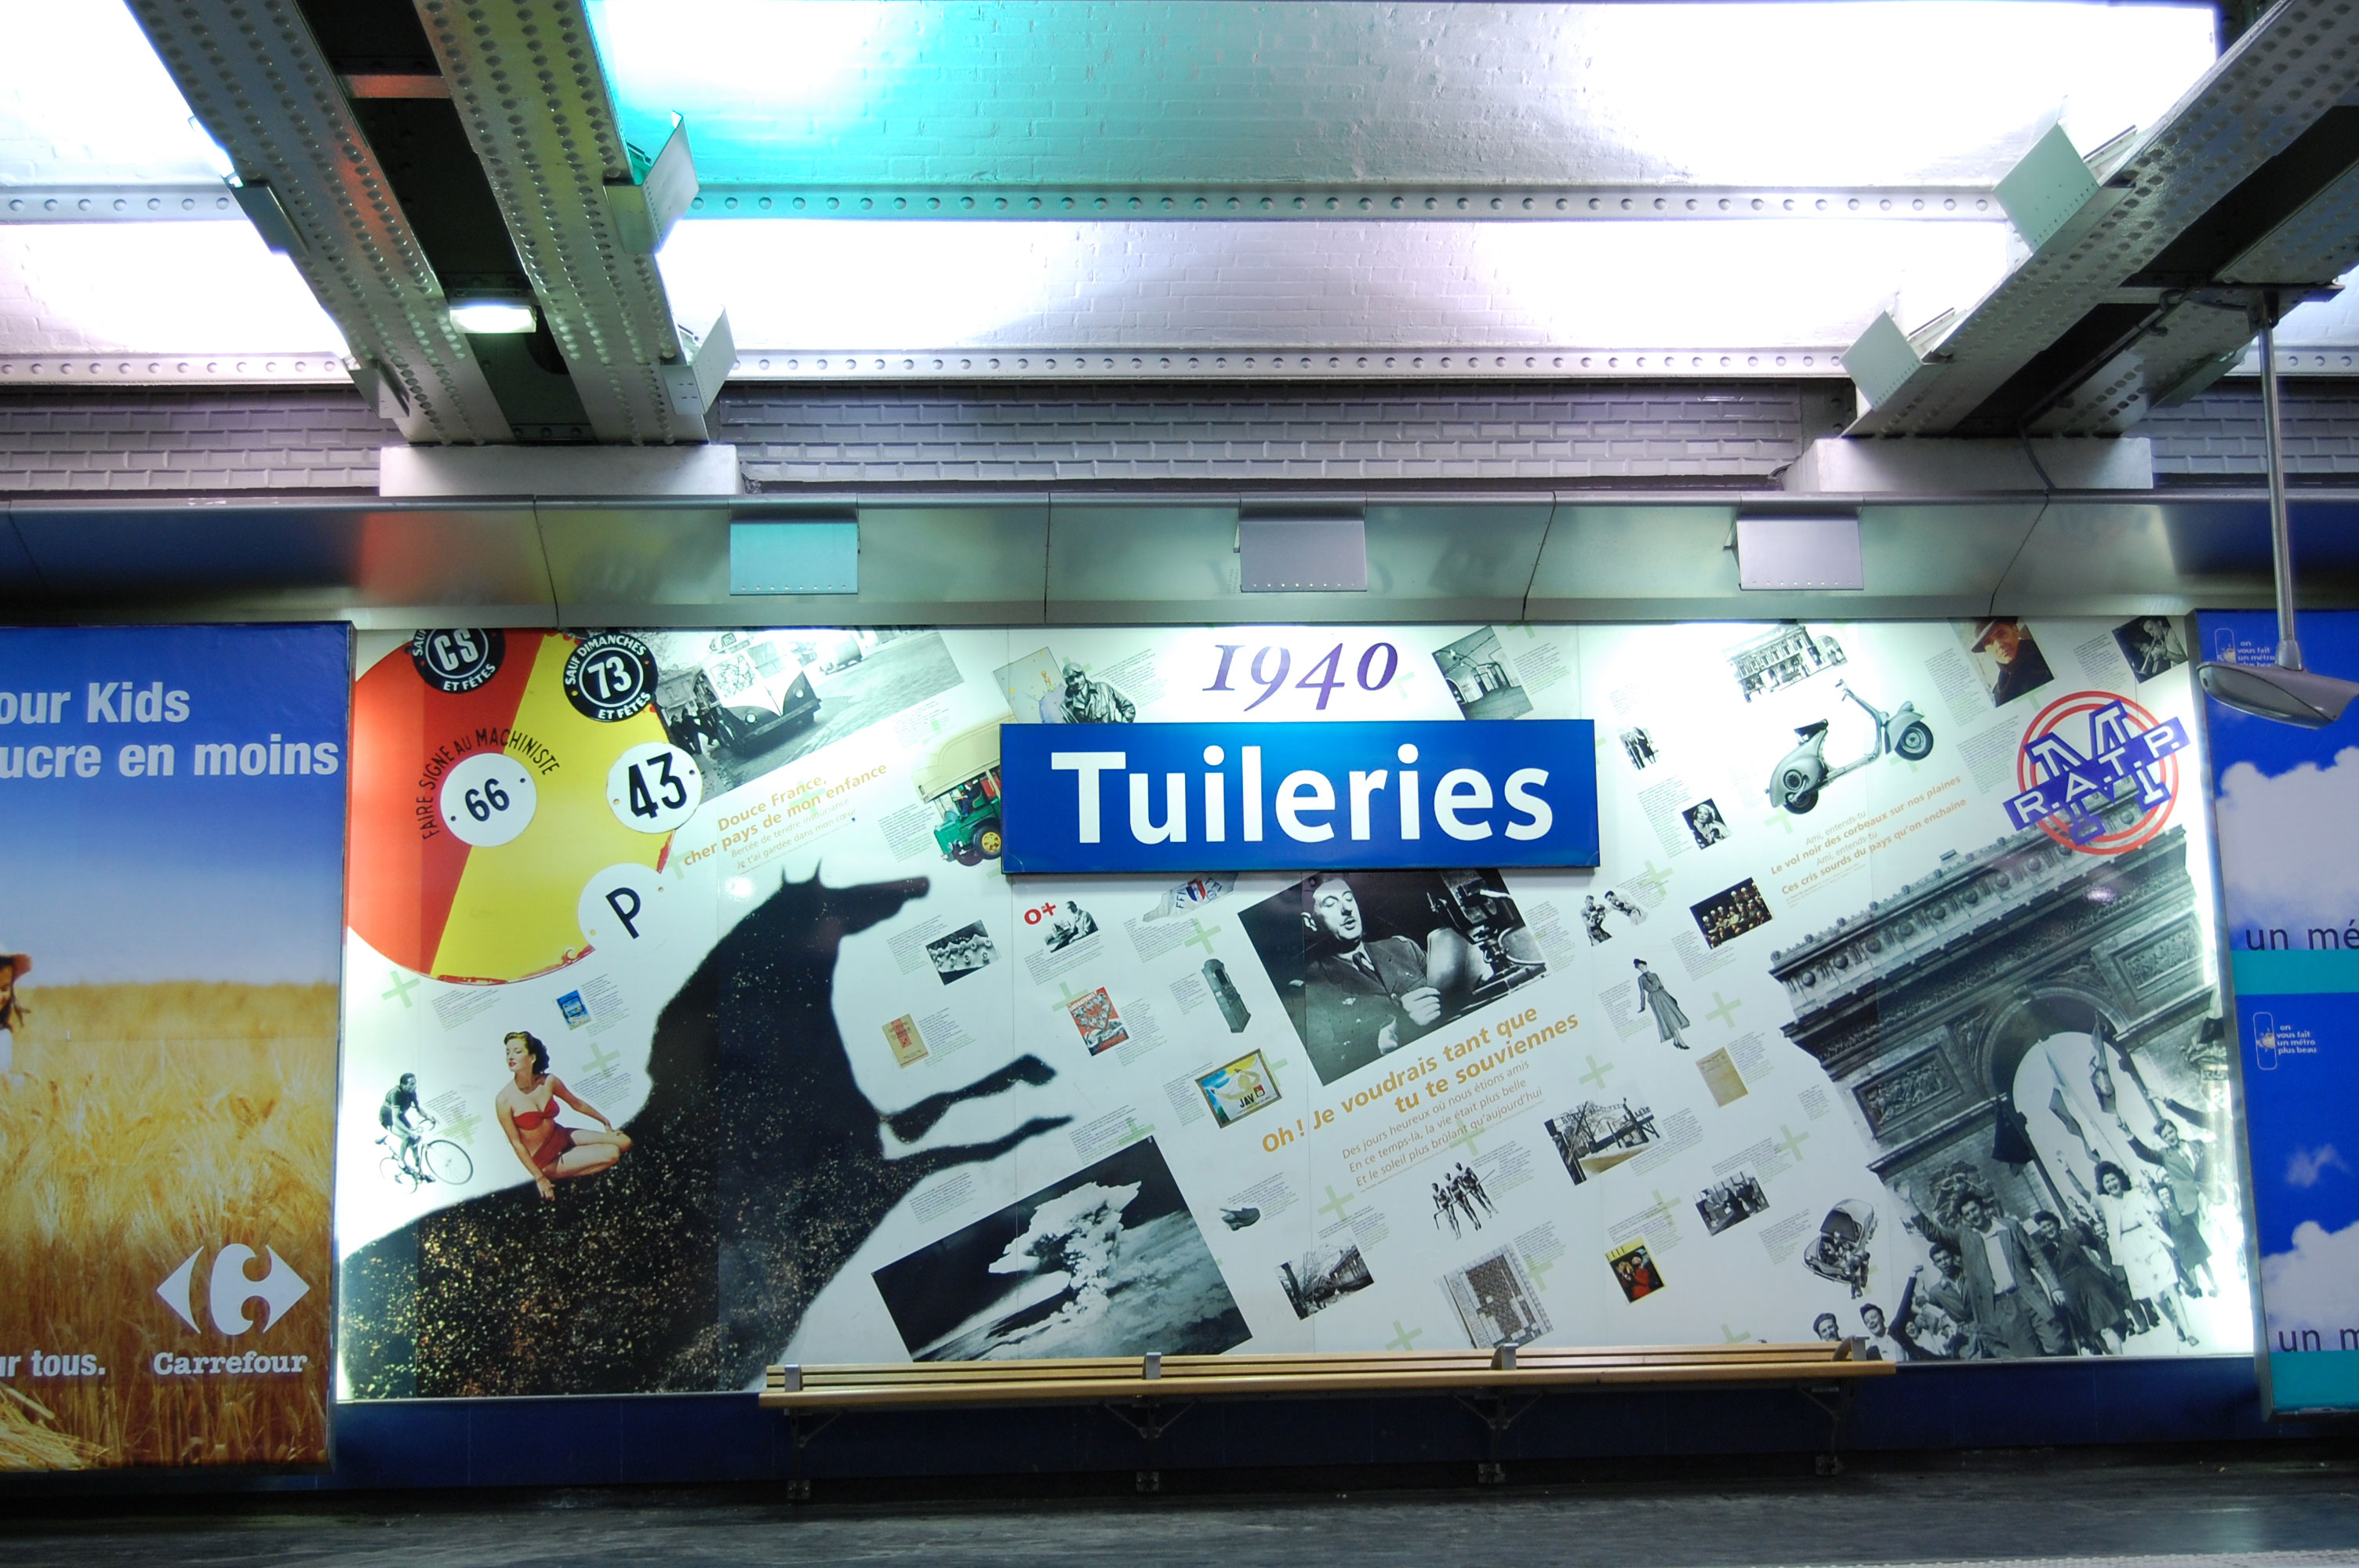 Station Tuileries